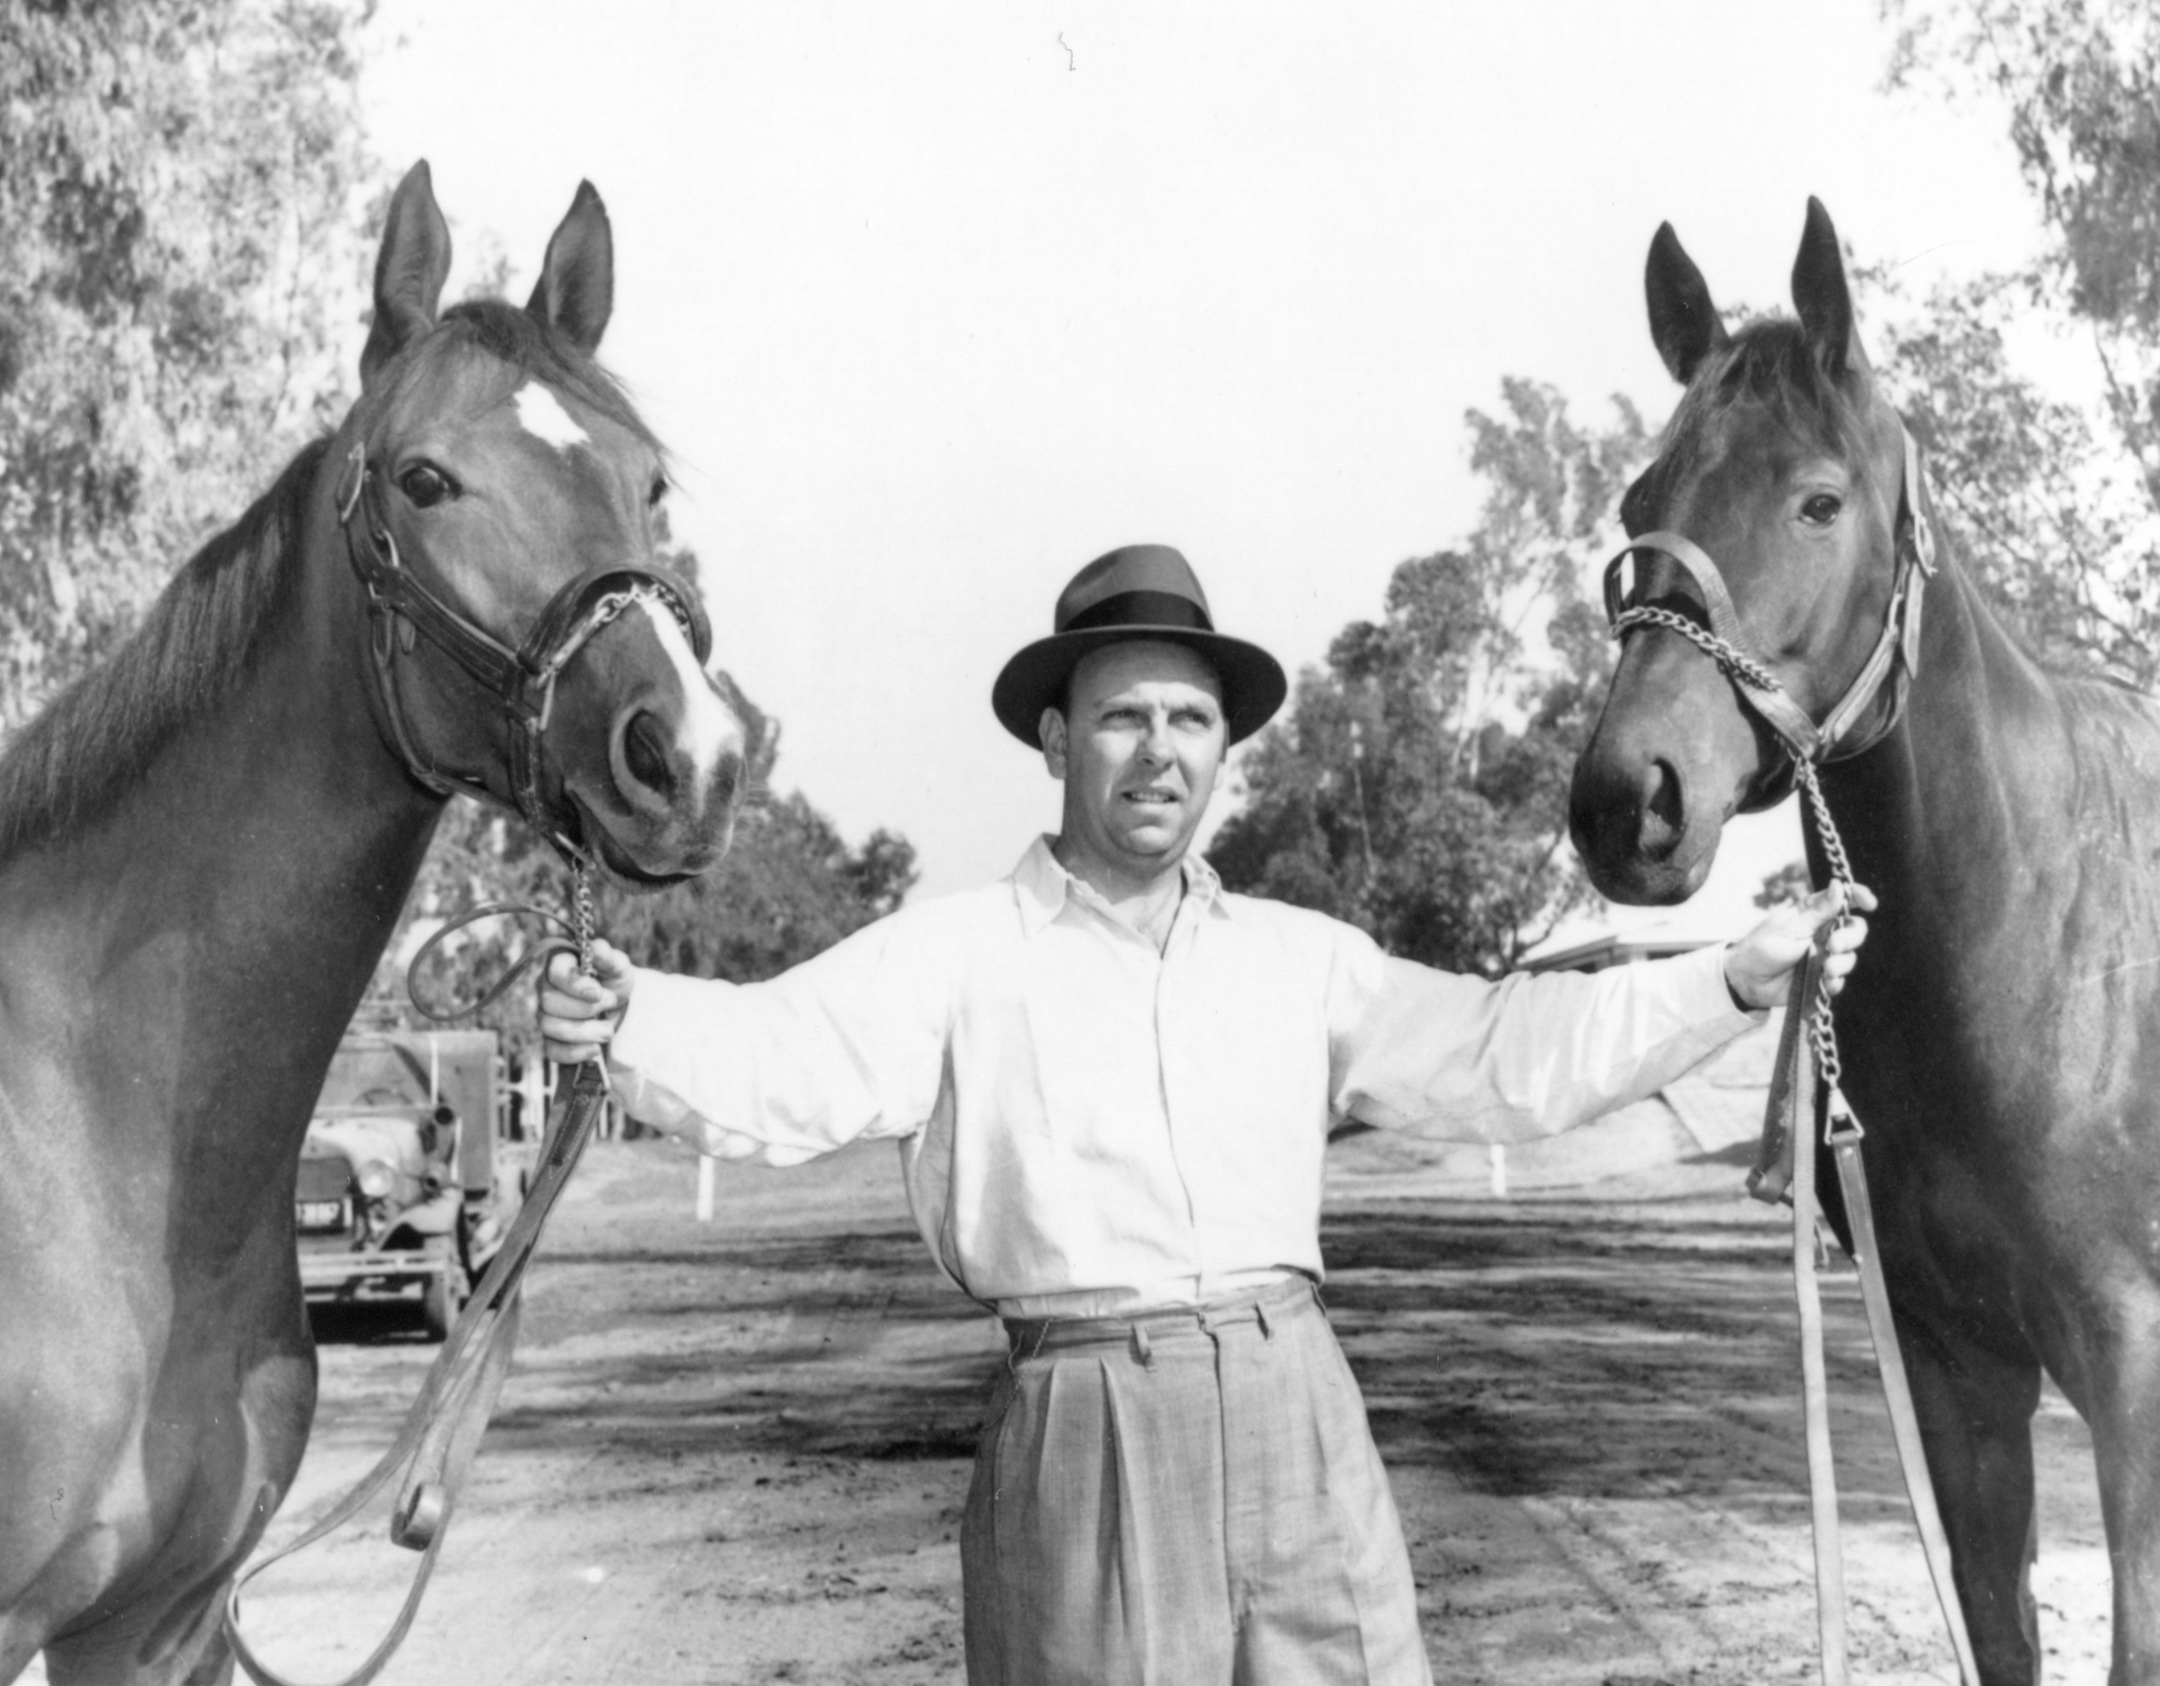 William C. Winfrey holding two unidentified horses in 1971 (Museum Collection)